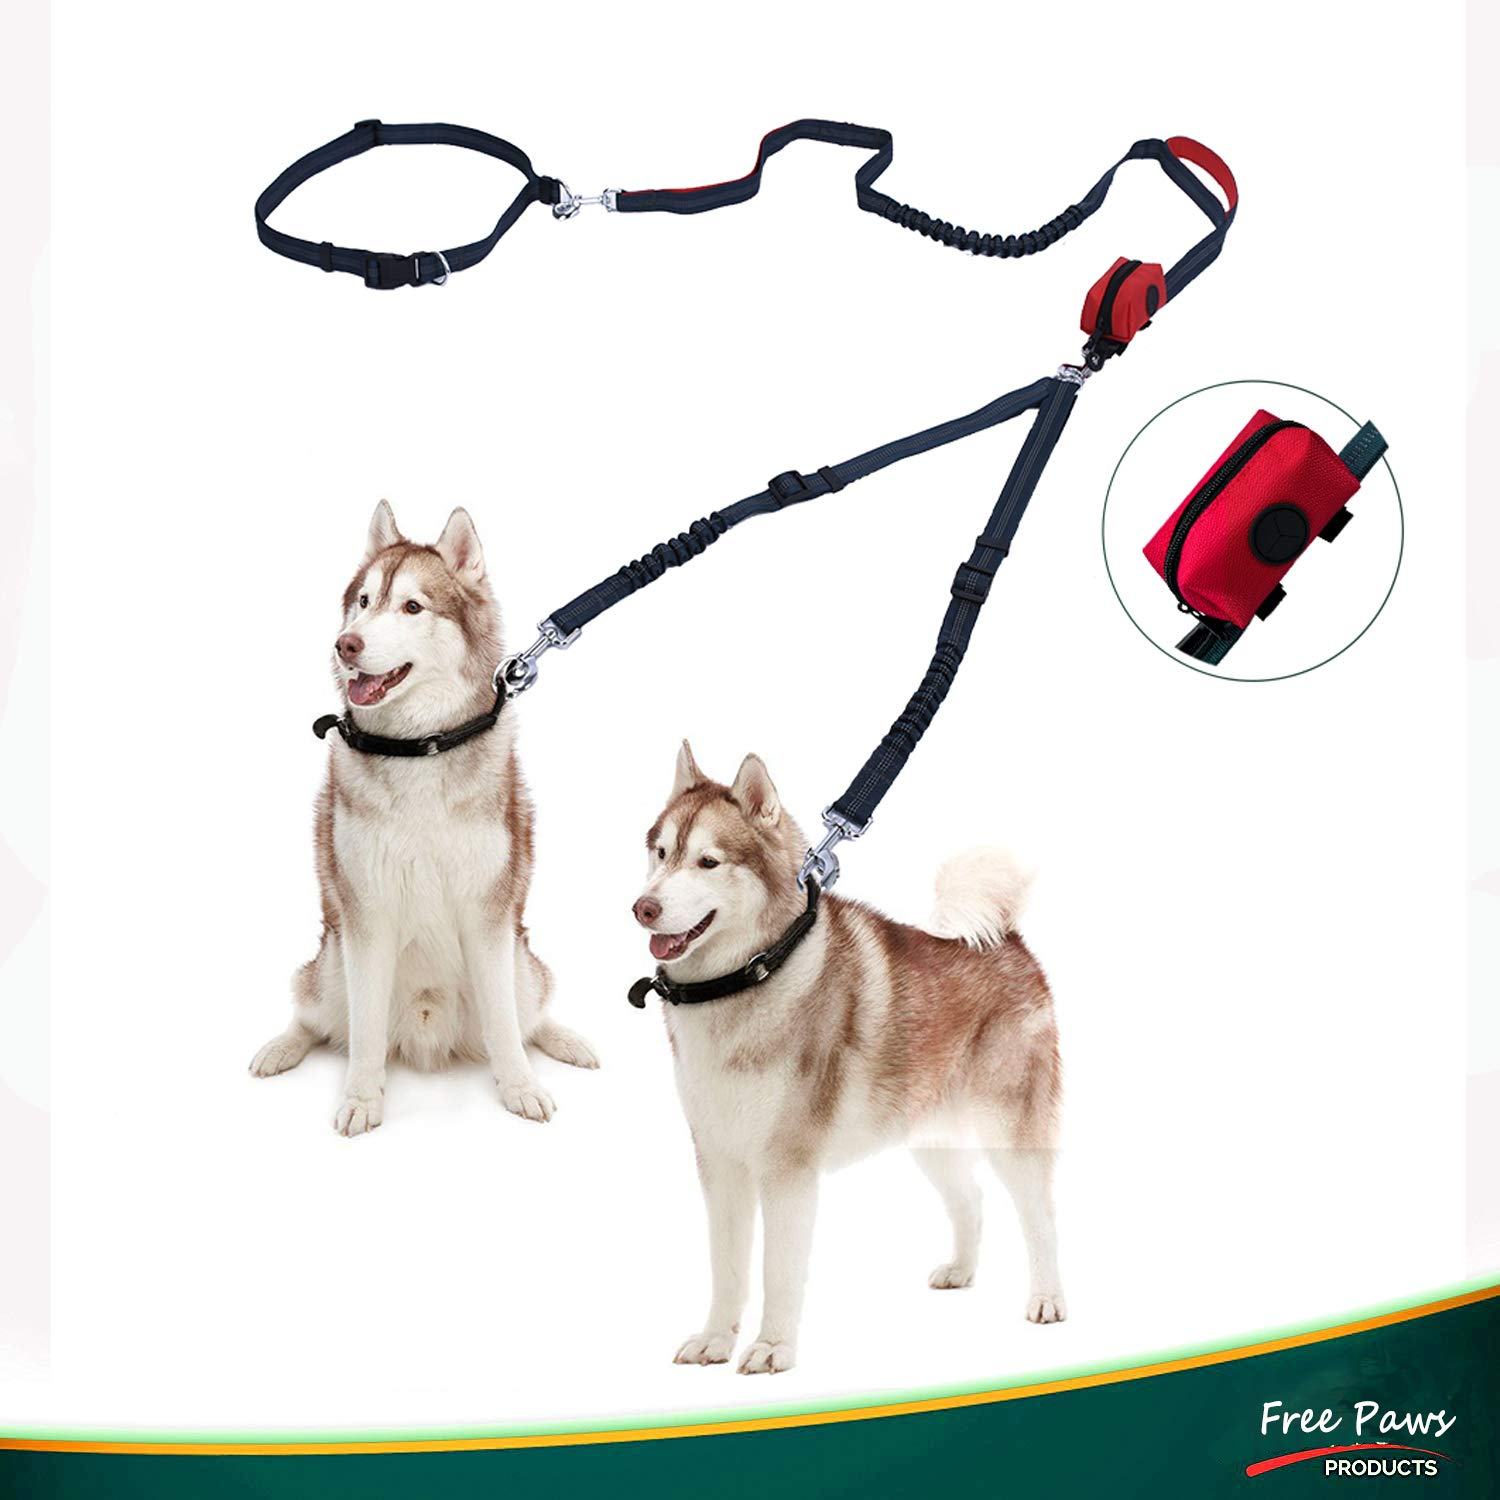 Free Paws Double Dog Leash, Hands-Free Dog Walking Leashes for 2 Dogs with Waist Leash Dual Bungees Padded Handles Waste Bag, 150Lbs Fit Medium to Large Dogs